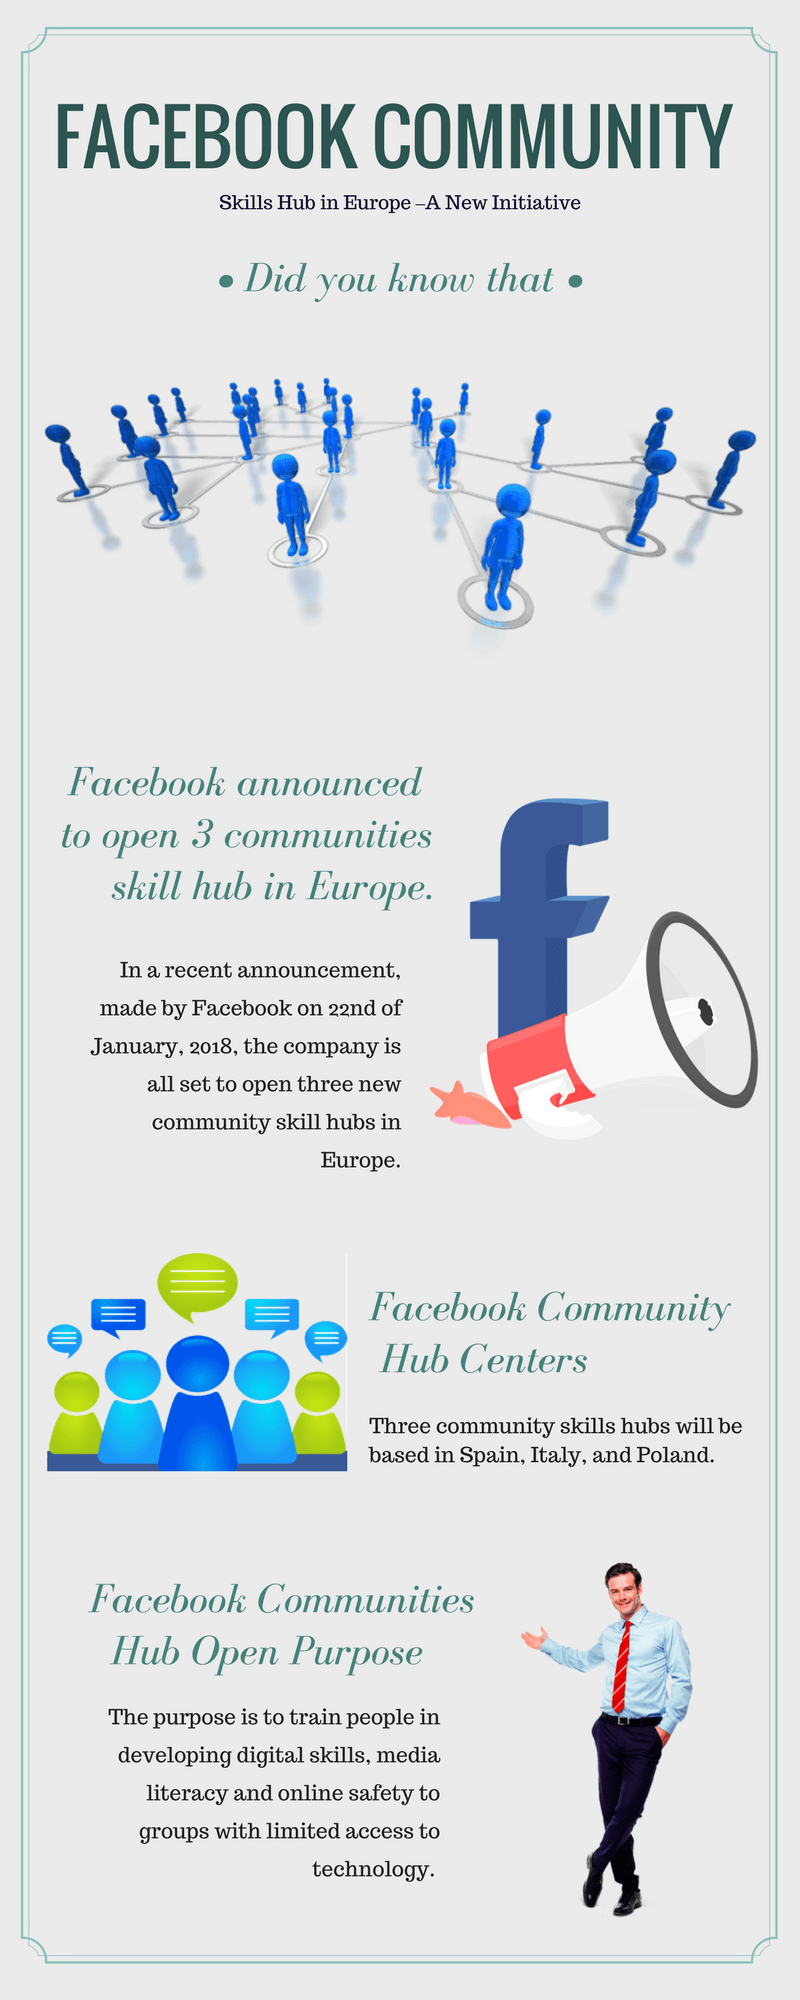 Community Skills Hub in Europe from Facebook – A New Initiative